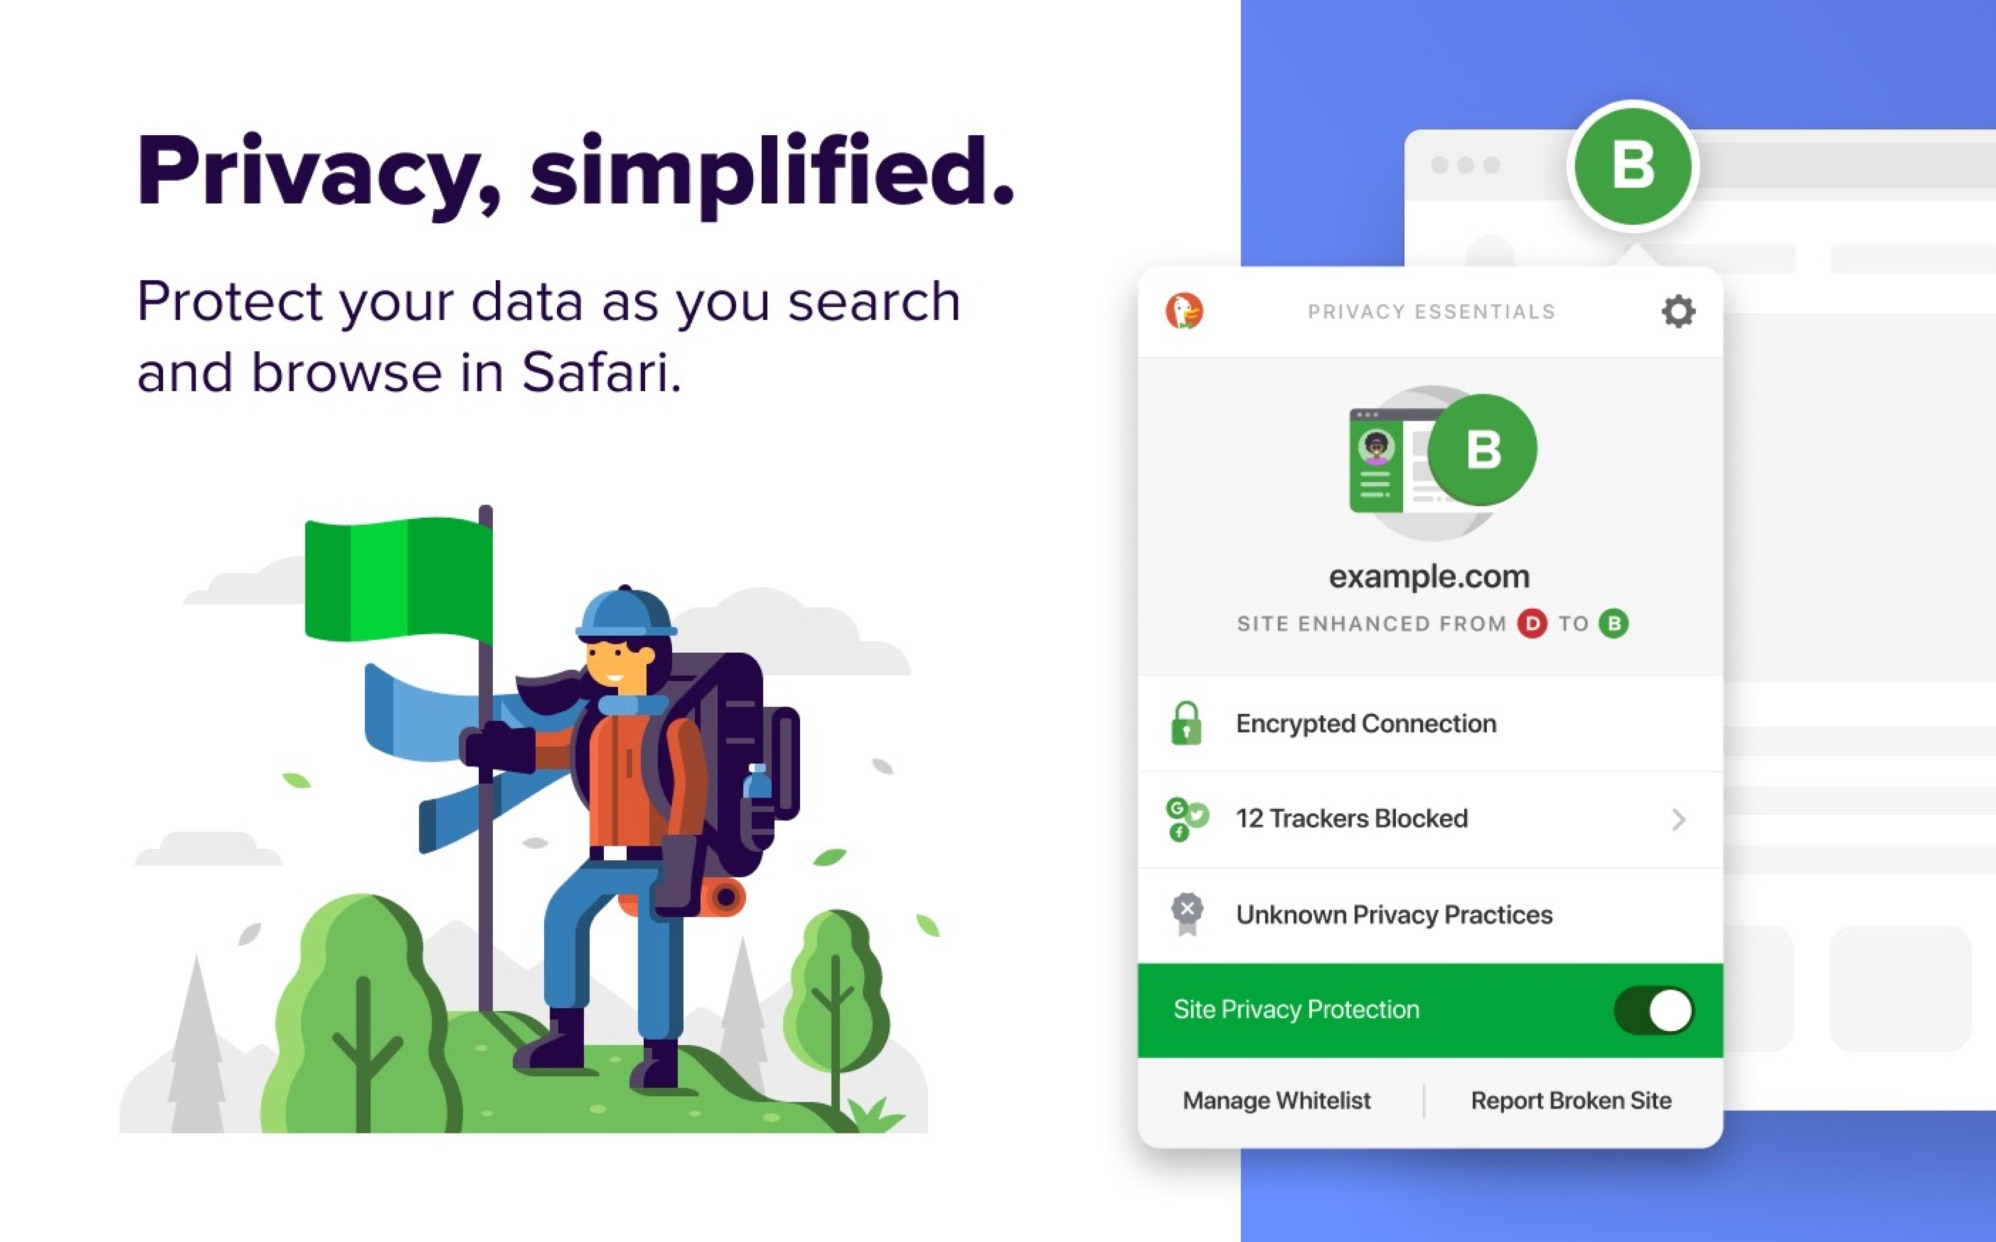 DuckDuckGo Privacy Essentials Extension Once Again Available for Safari